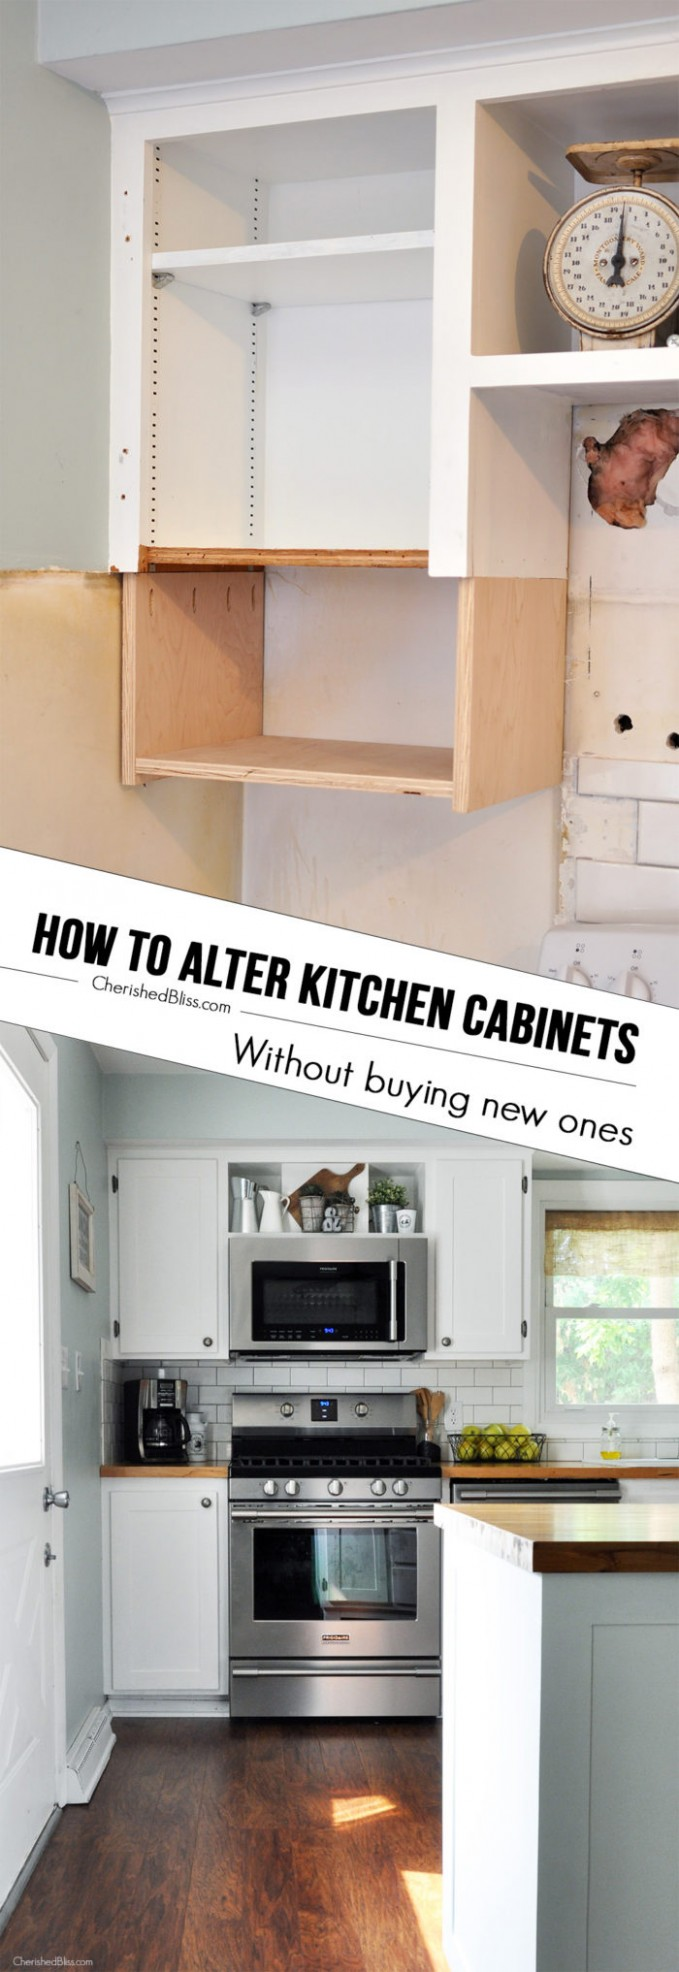 How to Alter Kitchen Cabinets - Cherished Bliss - Shorter Kitchen Base Cabinets